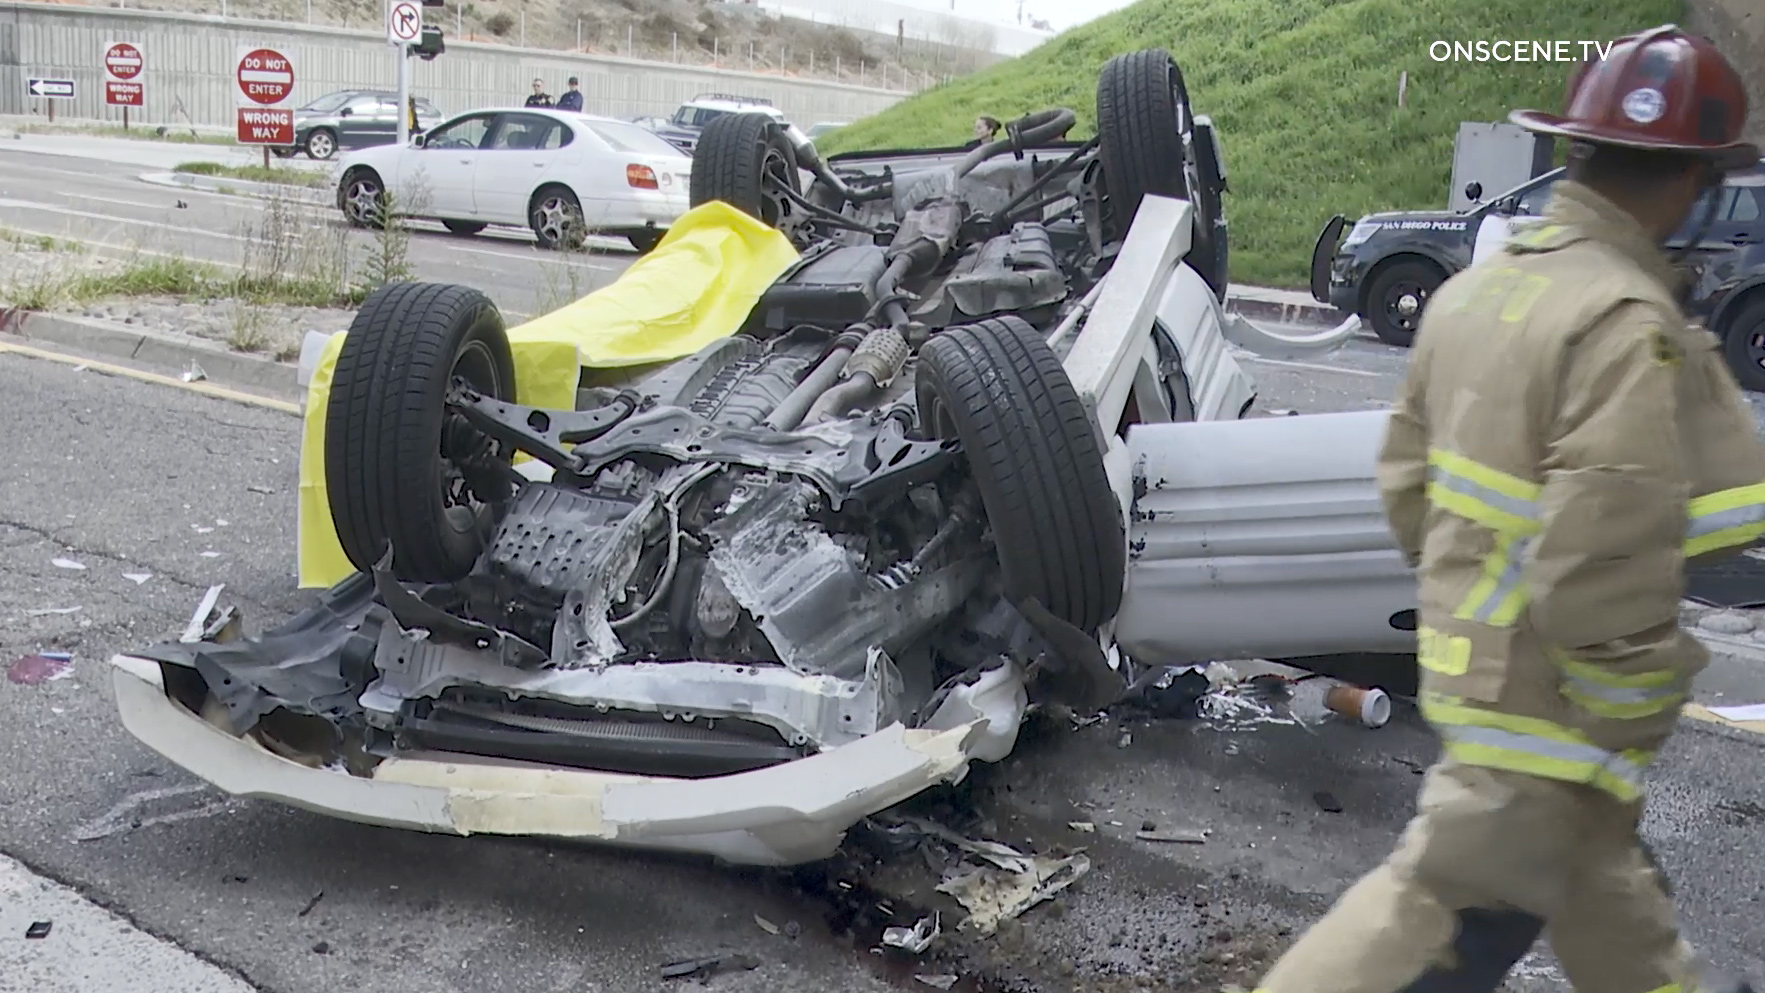 A driver was killed when this Jeep went off a freeway overpass in Pacific Beach and landed on its roof. (Video: Onscene.tv)